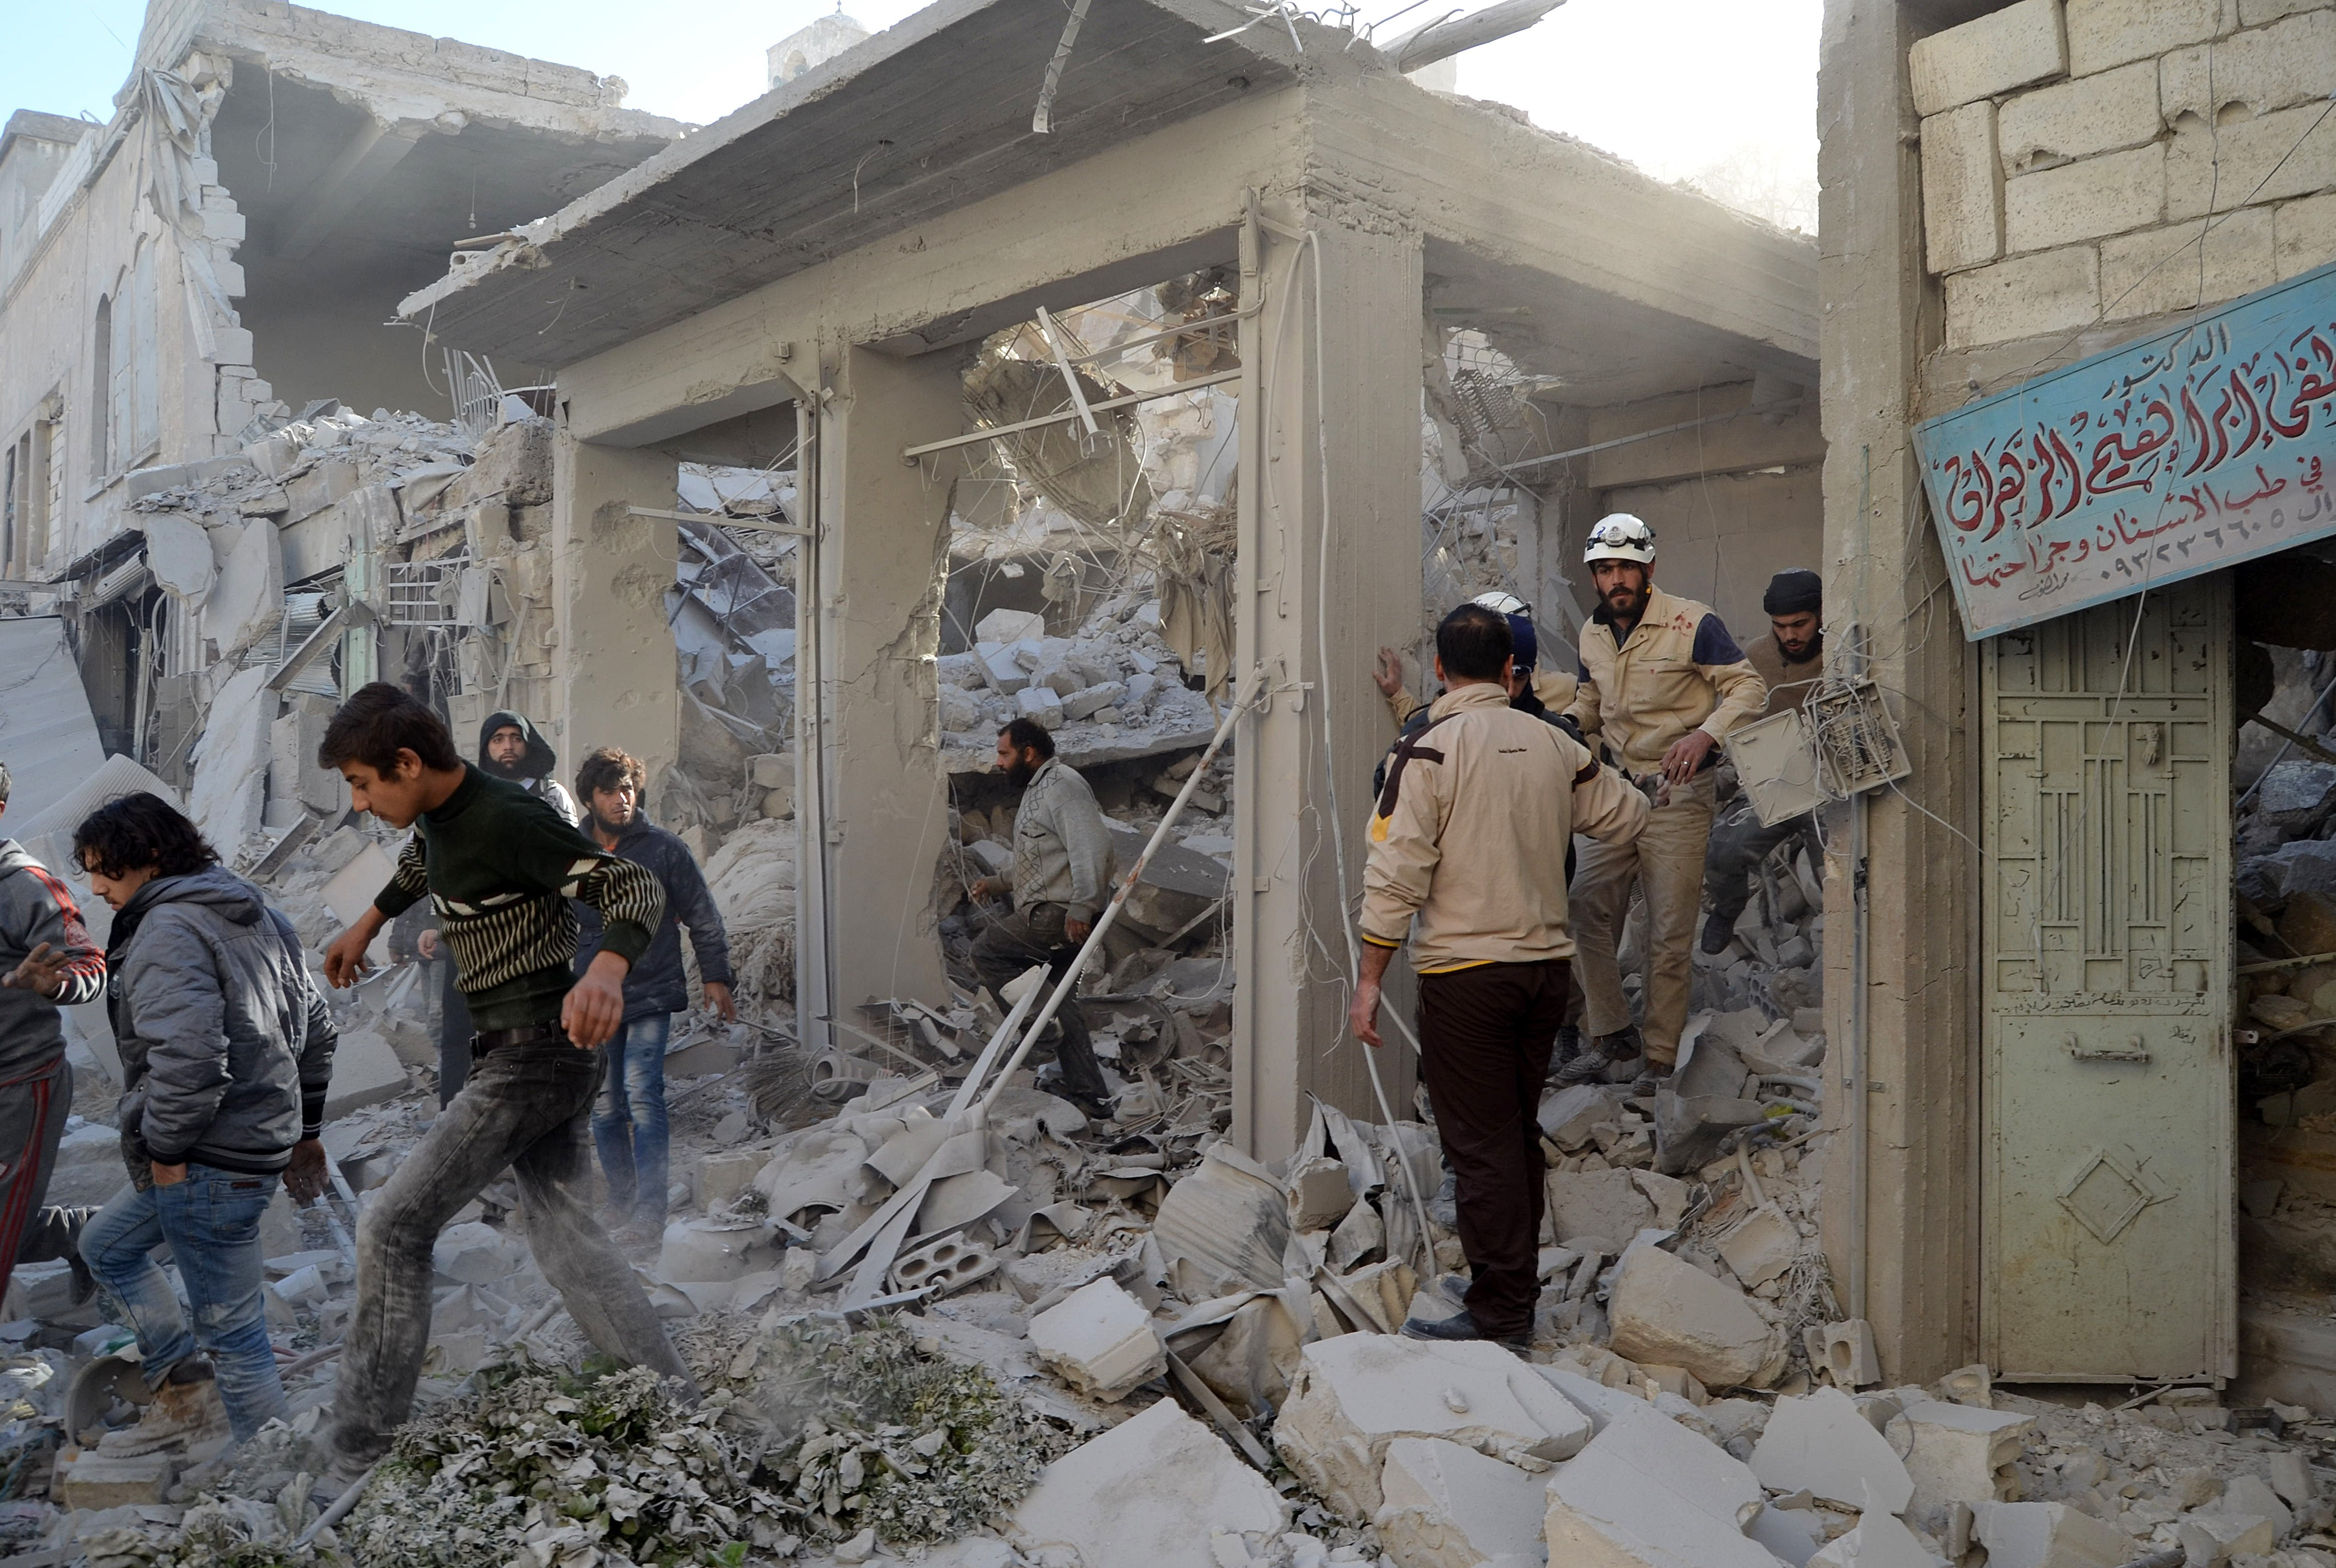 Syrian civil defence members search for survivors in the rubble of a building following the Russian airstrikes targeting a market and residential area in Ariha town Idlib, northern Syria on Nov. 29, 2015.